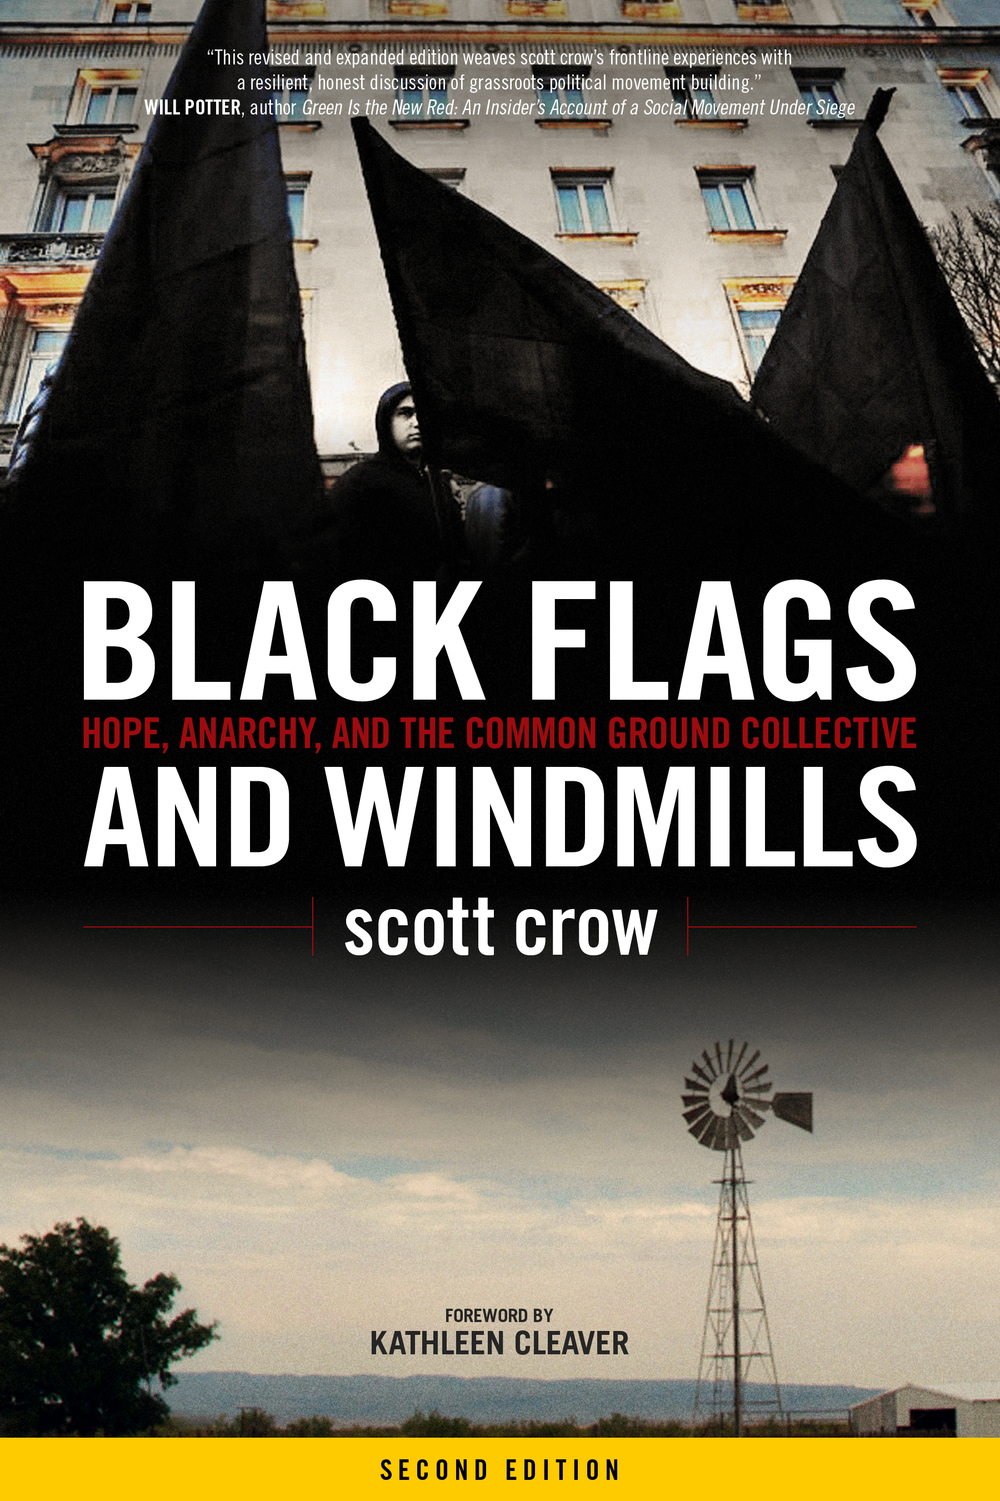 Black flags and Windmills cover